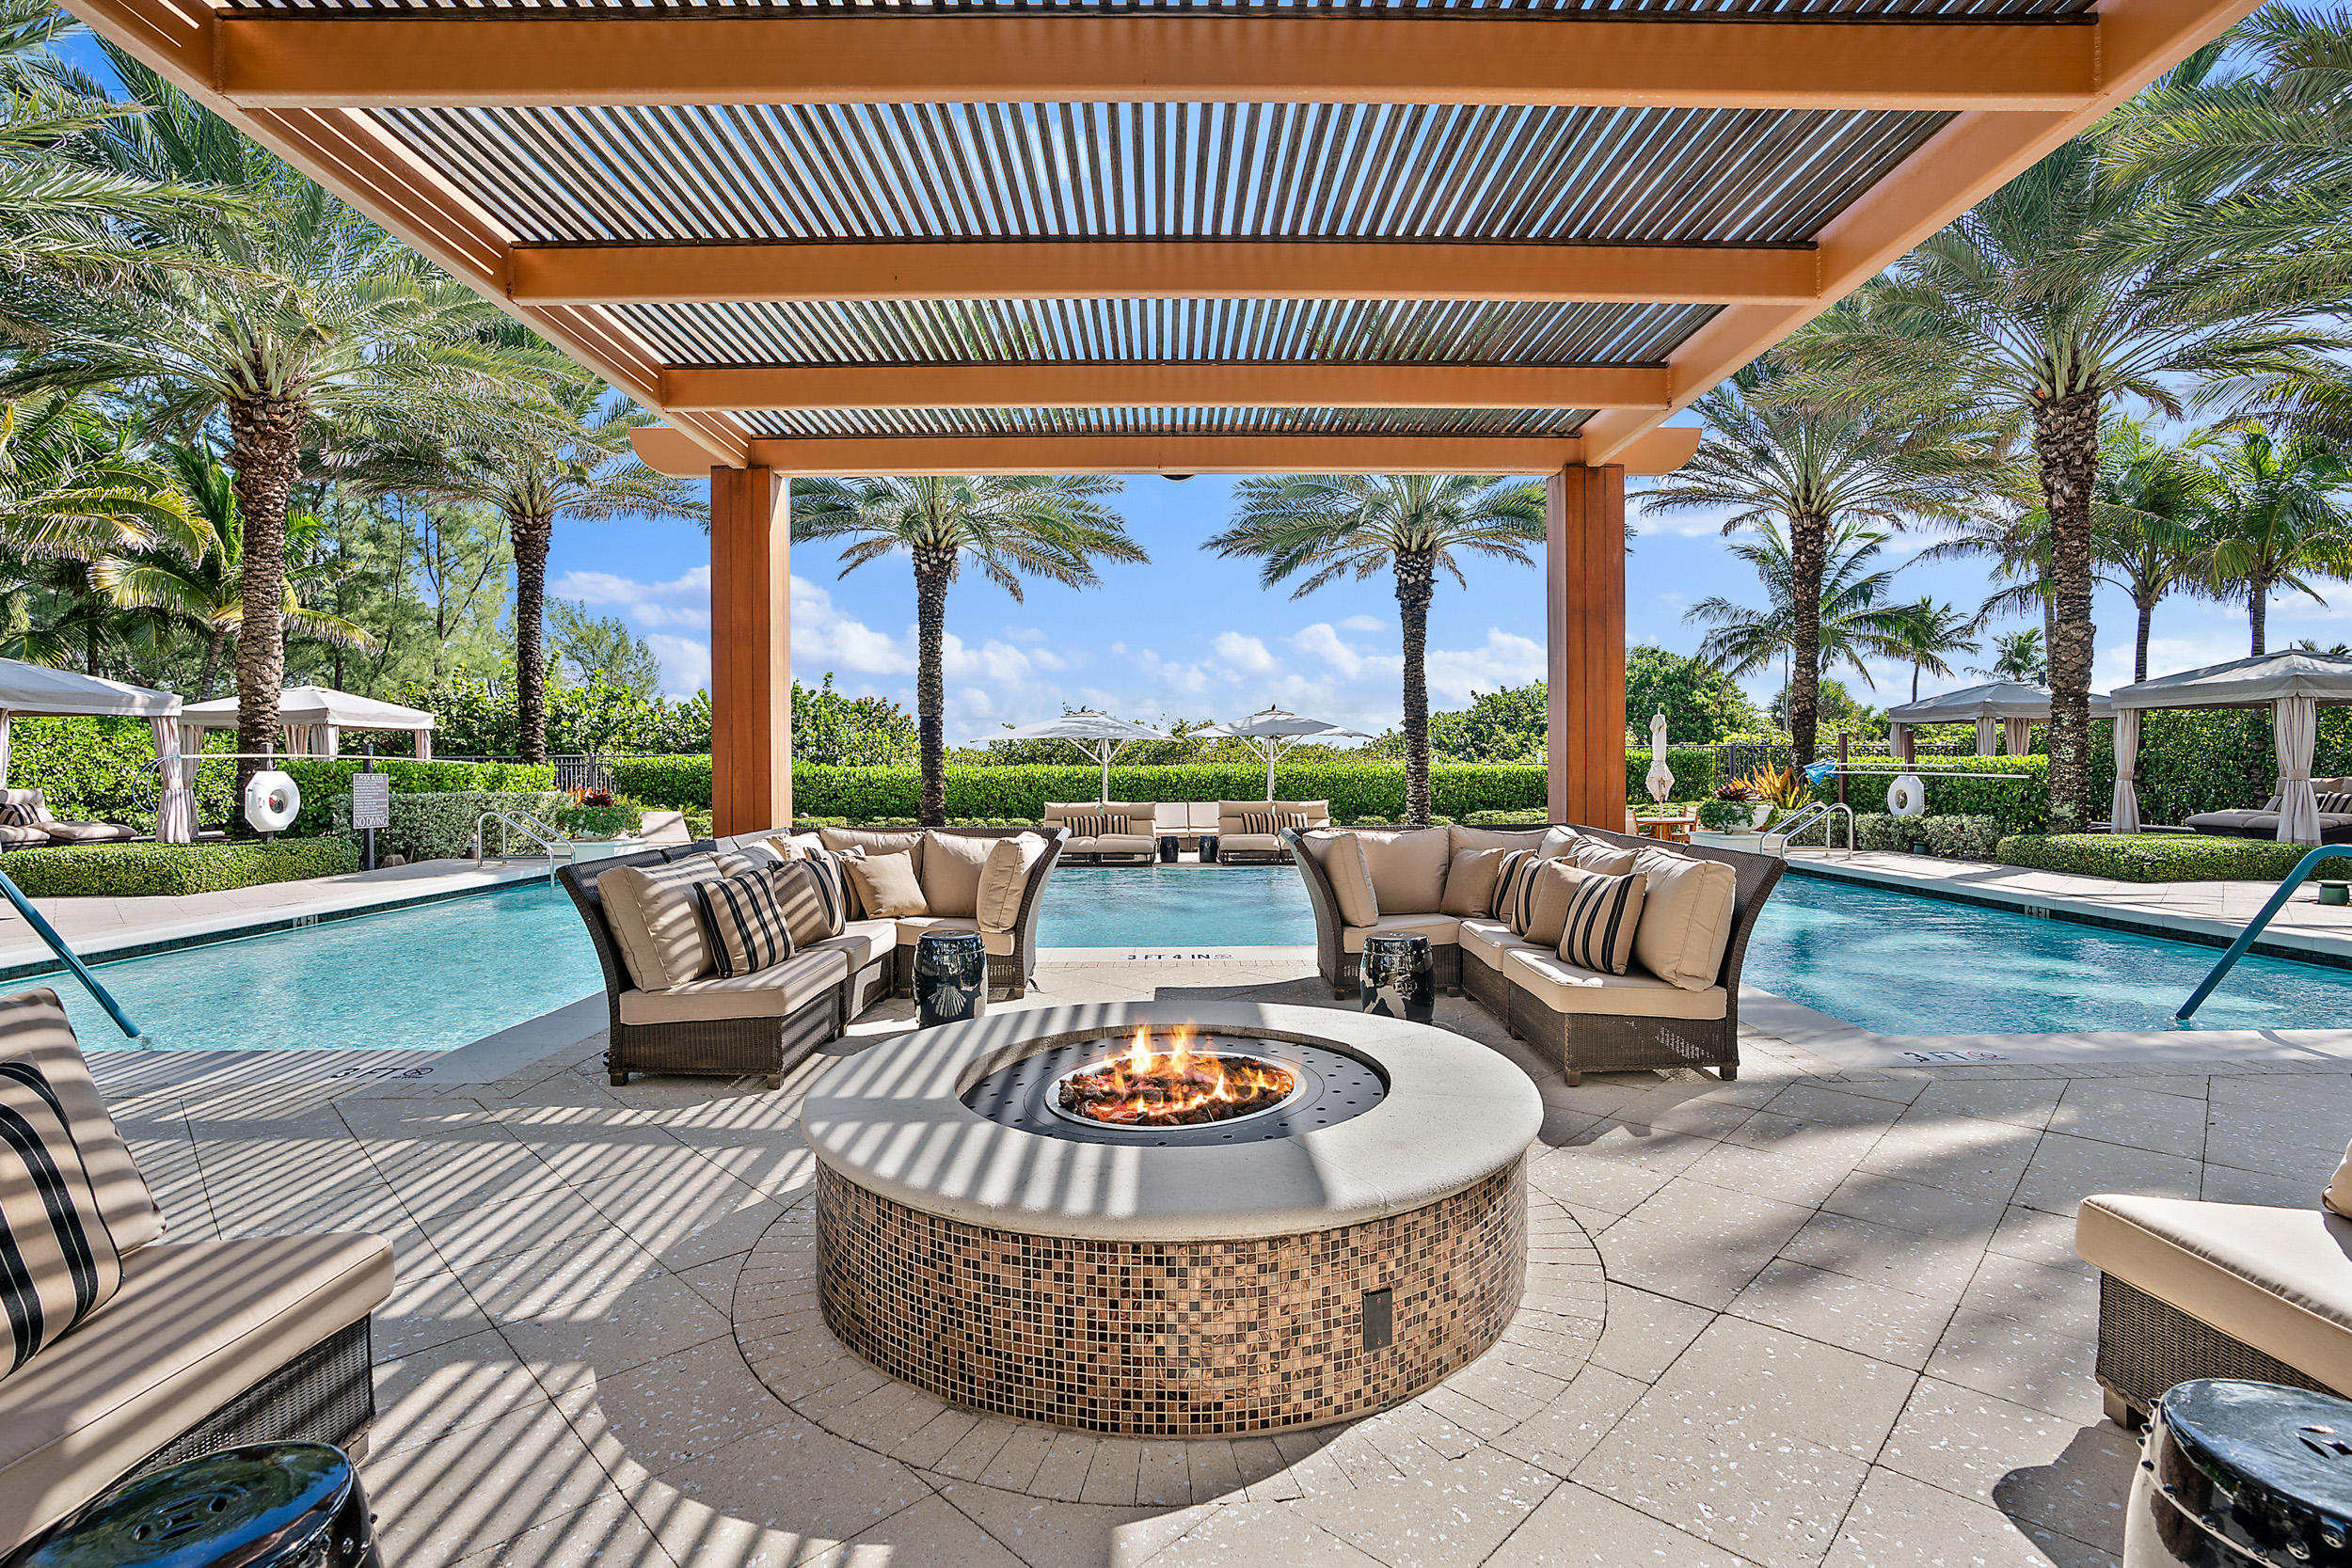 New Home for sale at 155 Ocean Avenue in Singer Island